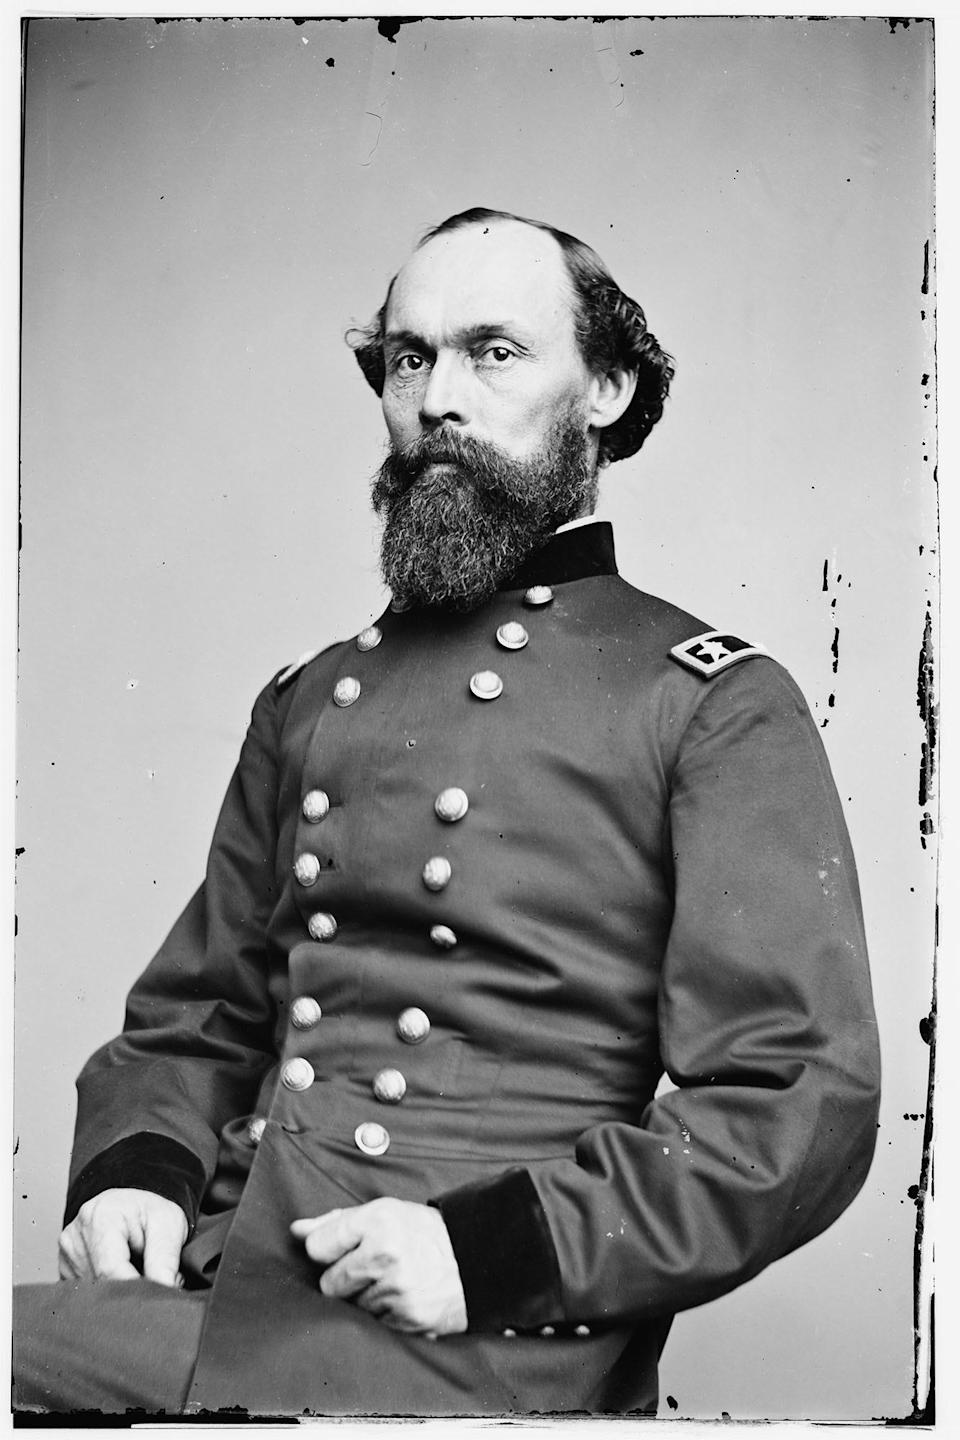 Undated photograph of Major Gen. Gordon Granger. On June 19, 1865,  flanked by Union soldiers under his command, he read a proclamation that all enslaved people were free.